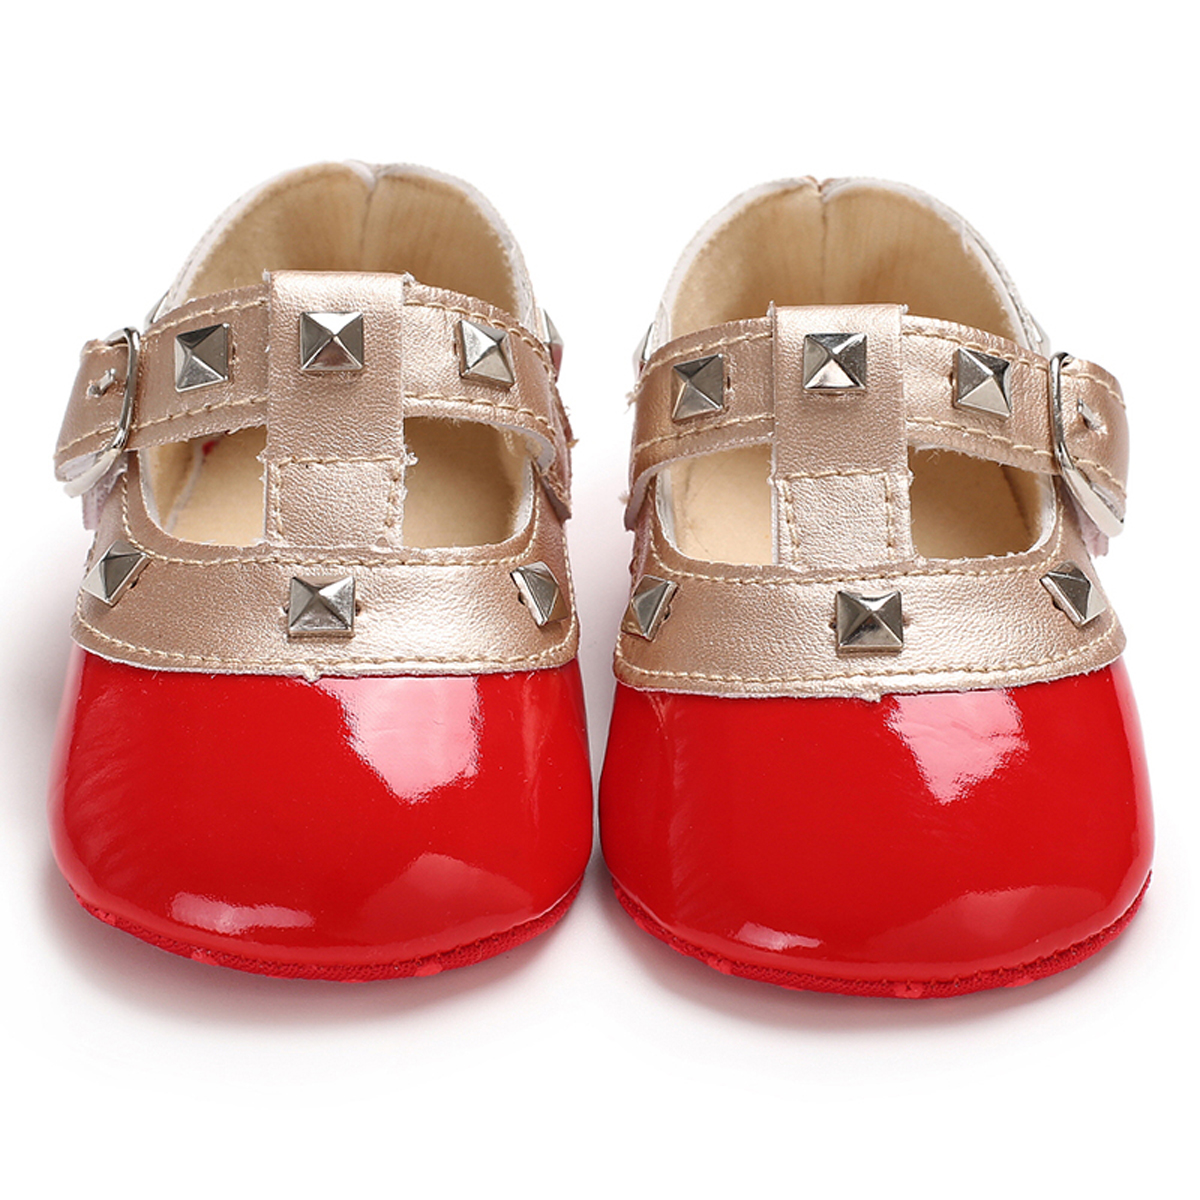 05e0b453f0a Free shipping on First Walkers in Baby Shoes, Mother & Kids and more ...